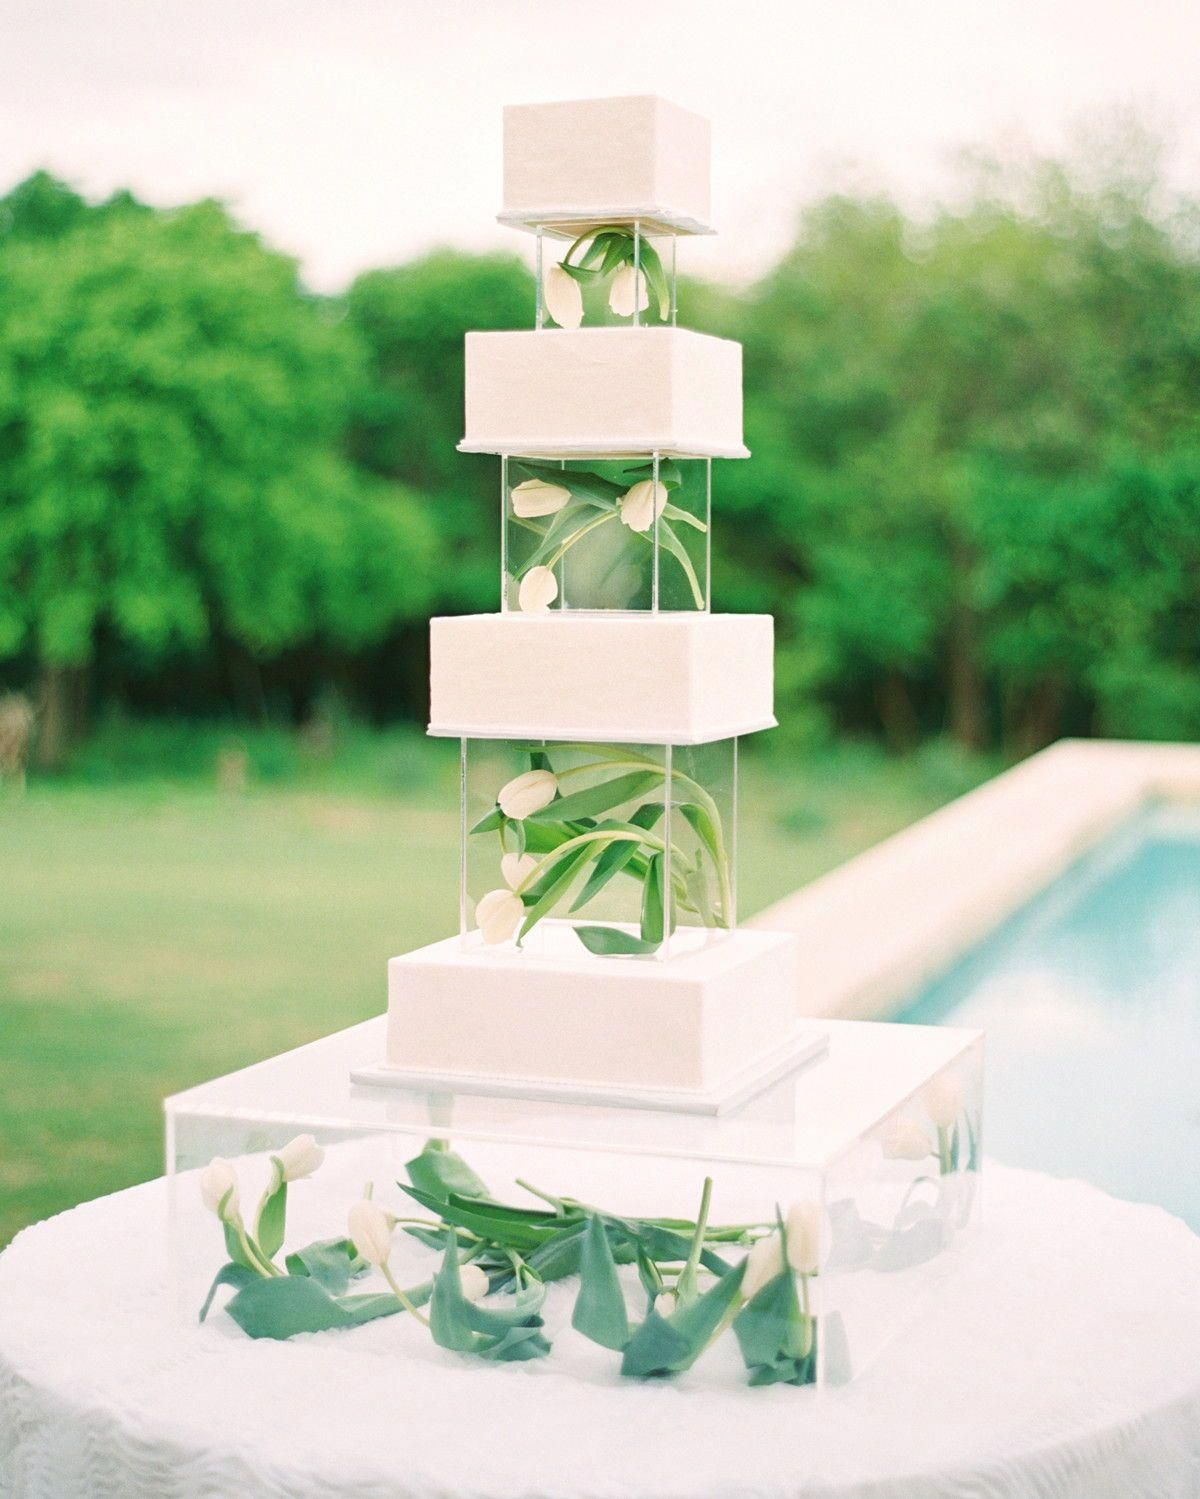 Whether your wedding cake is big or small, a floral tier is the perfect detail for any wedding. You can incorporate your colors and theme with this eye-catching dessert addition. #Wedding #Cake #Tier #Floral #Detail #Unique #WeddingCakeIdeas #Flowers #Dessert #CakeIdeas | Martha Stewart Weddings - Trending Now: Wedding Cakes with Floral Tiers #summerwedding